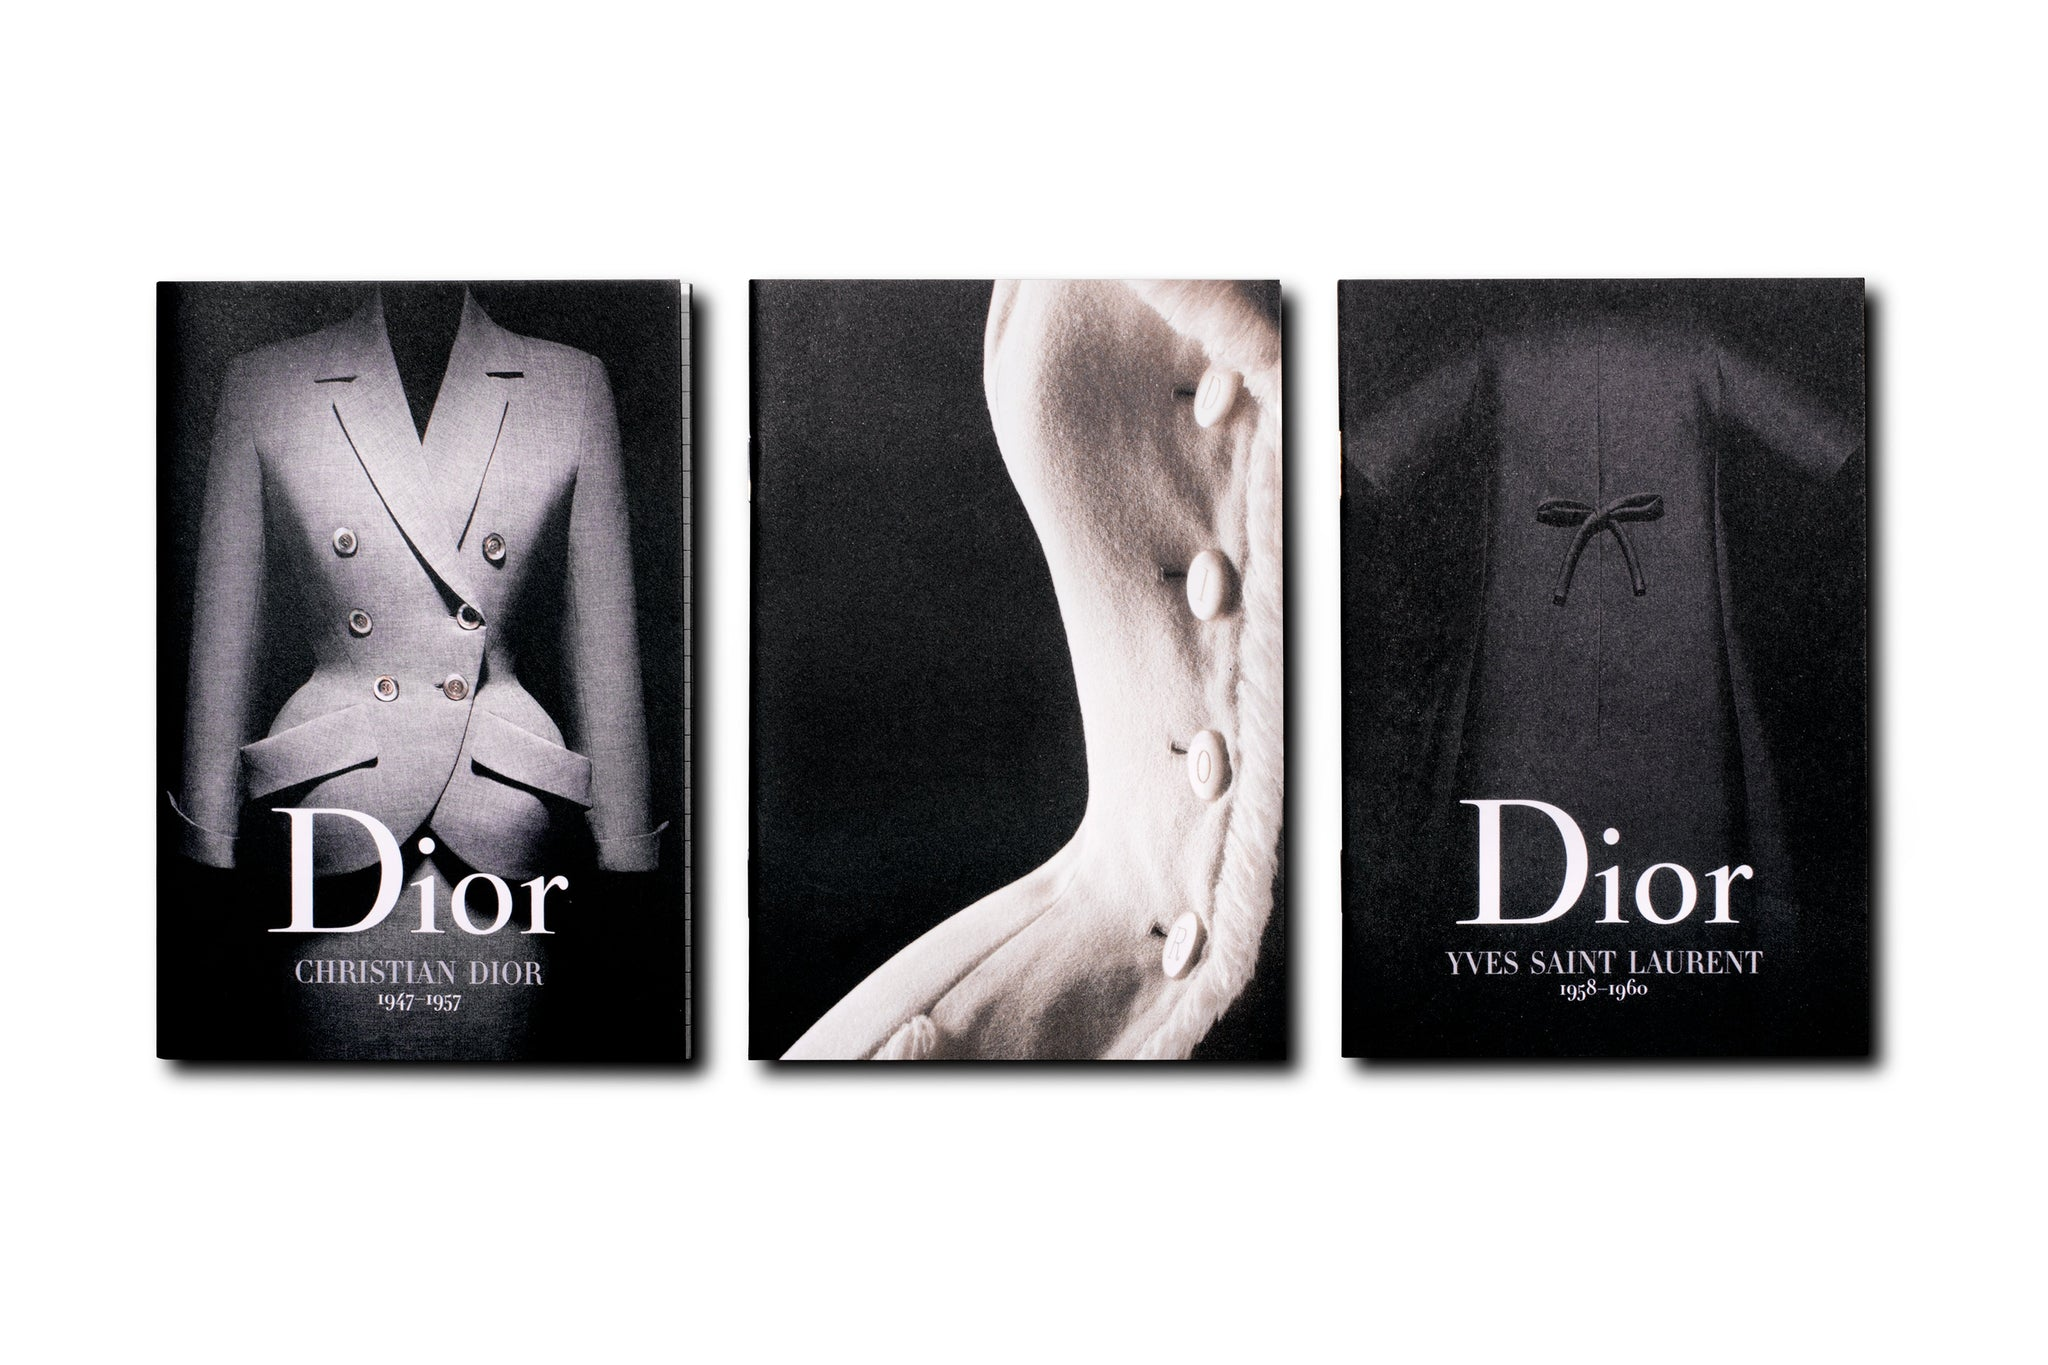 DIOR Set Notebook - Assouline